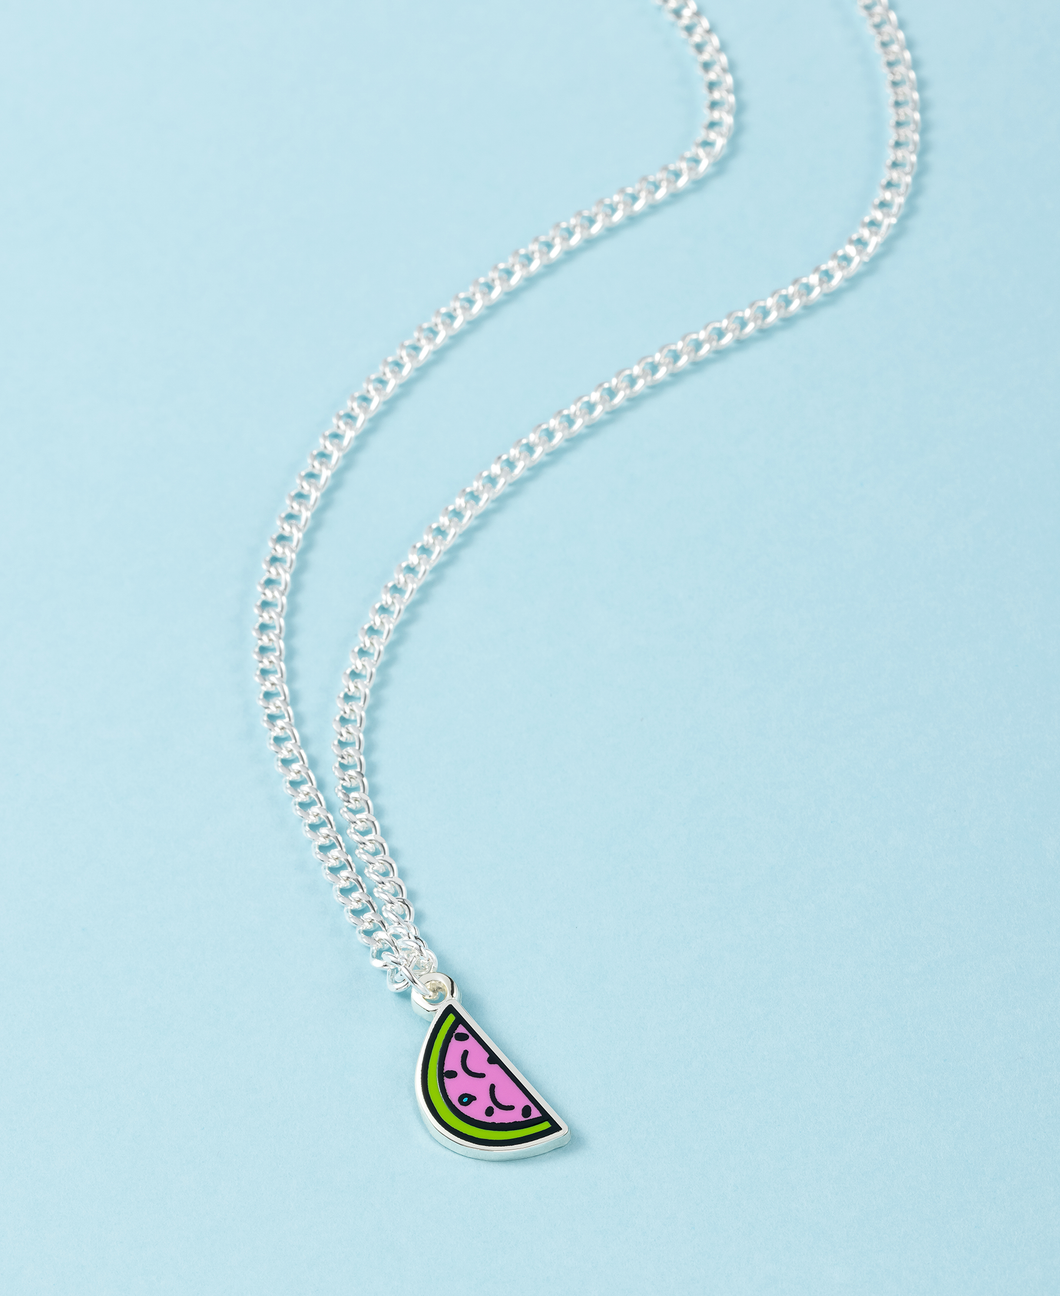 Watermelon Charm & Necklace